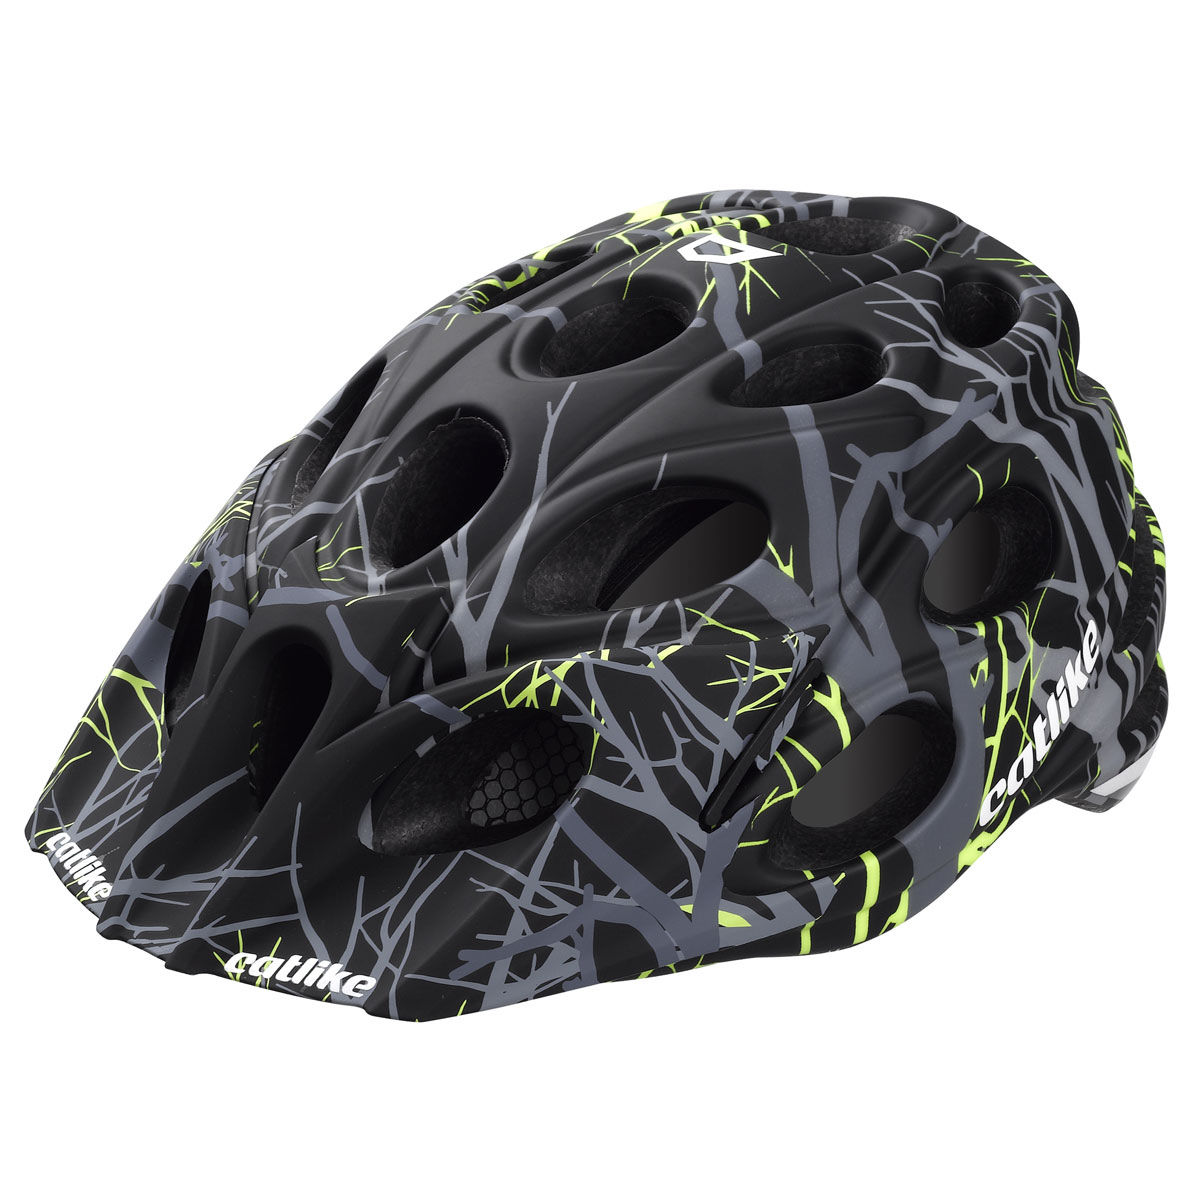 Casque VTT Catlike Leaf - M Black/Yellow Matt Casques VTT